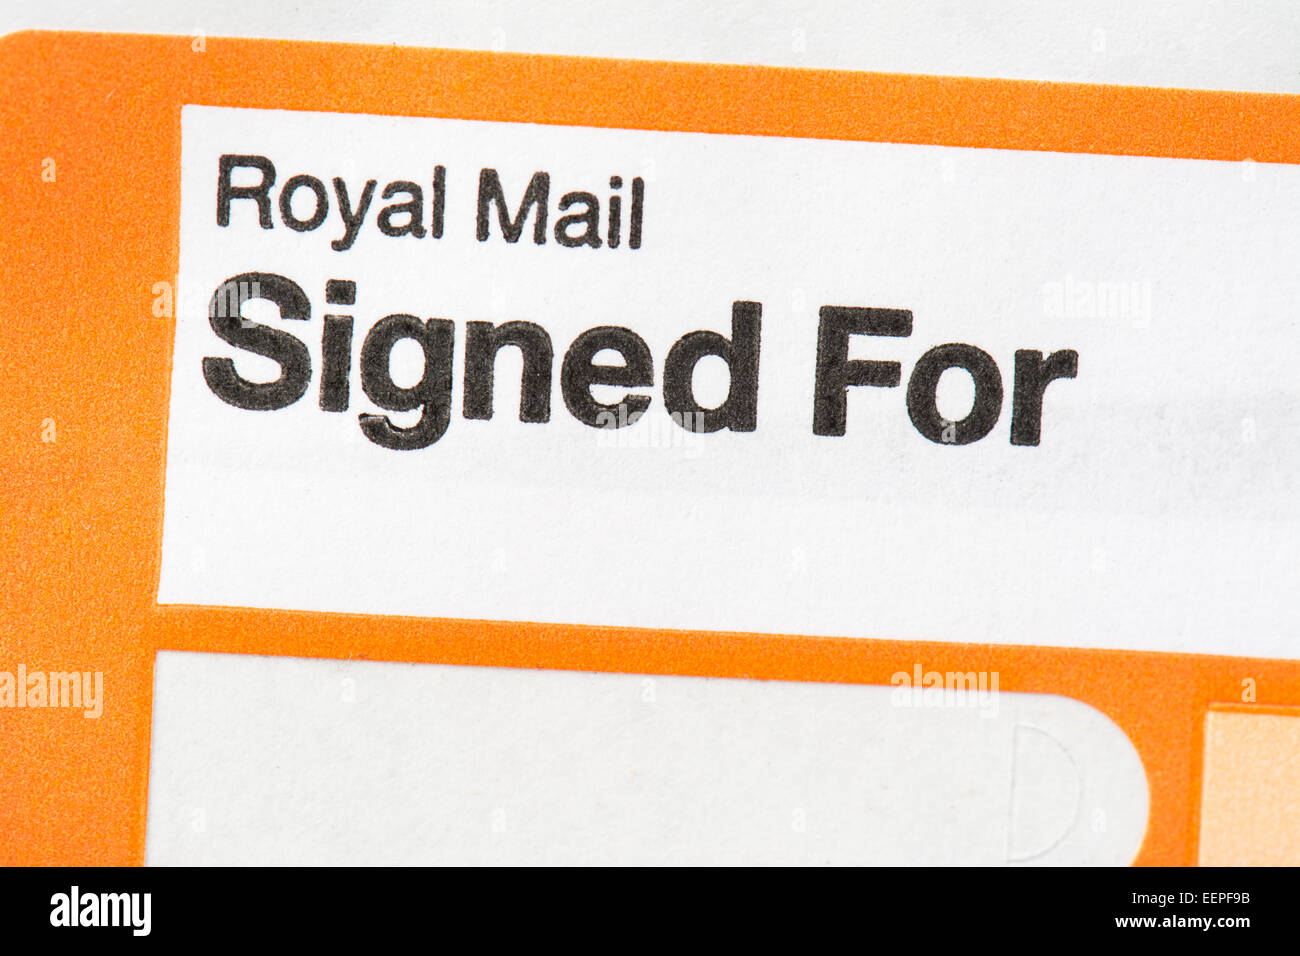 Royal Mail Signed For sticker off parcel - UK - Stock Image